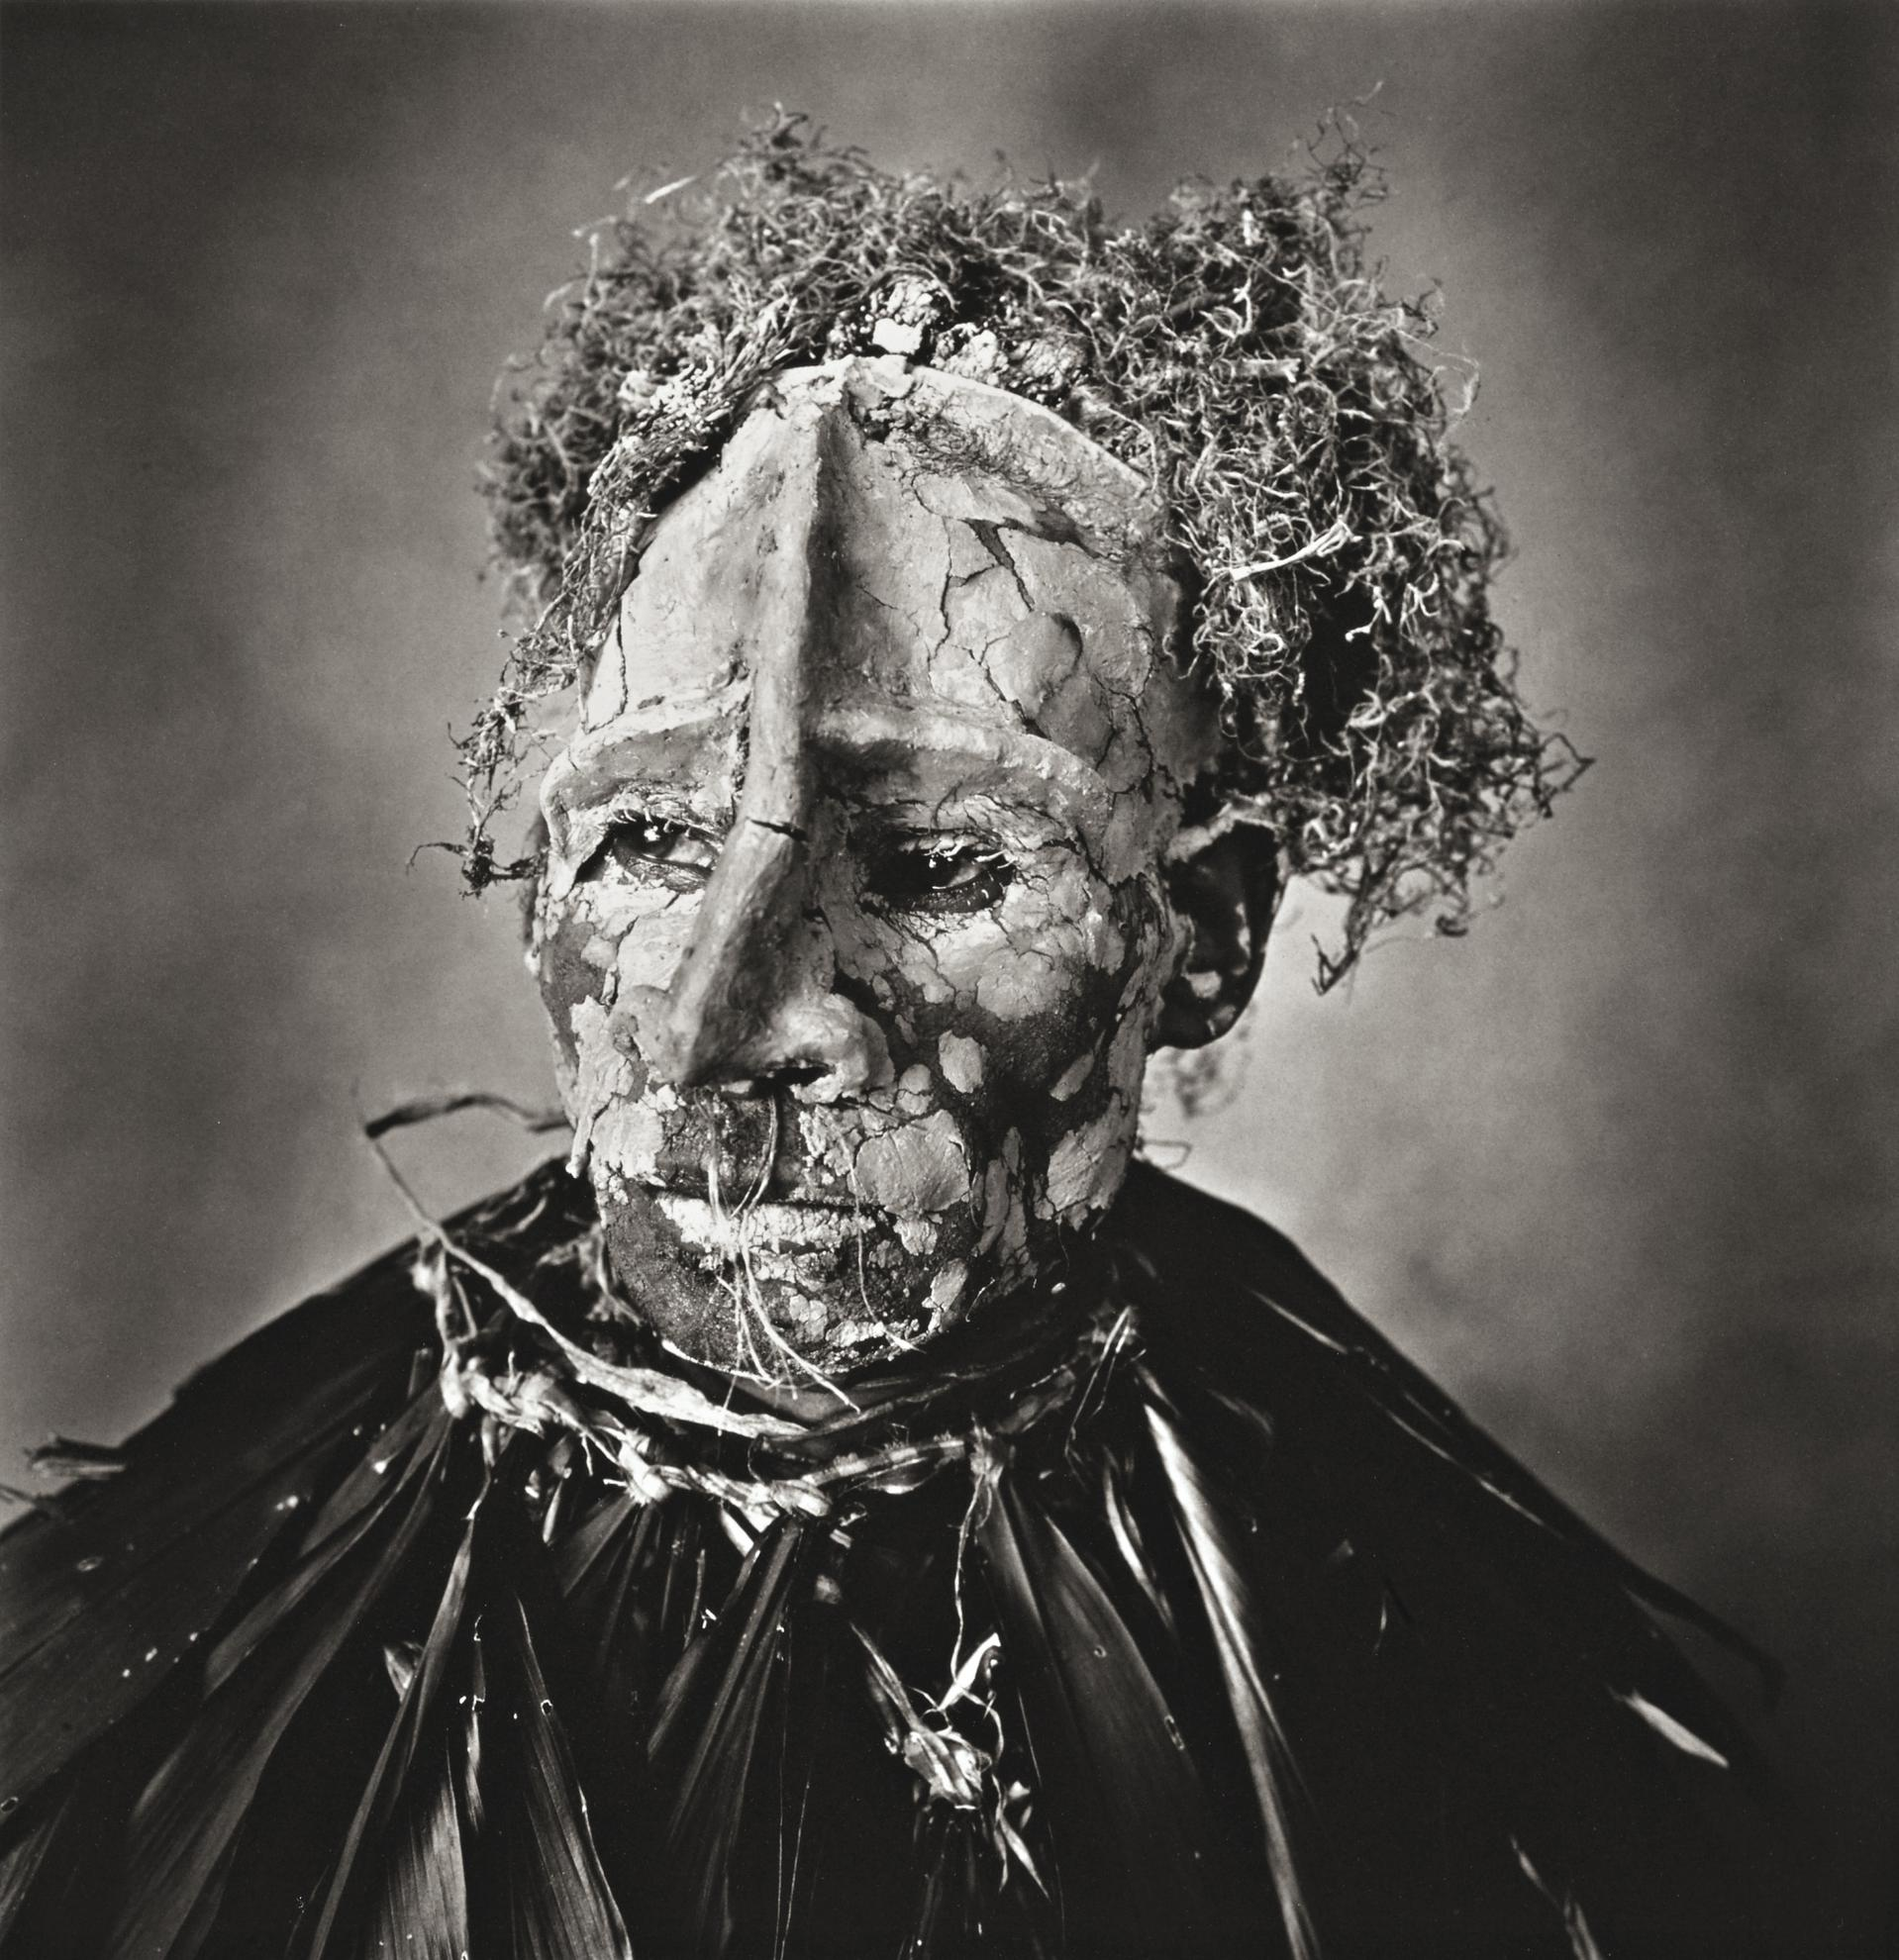 Irving Penn-Man With Pink Face, New Guinea-1970